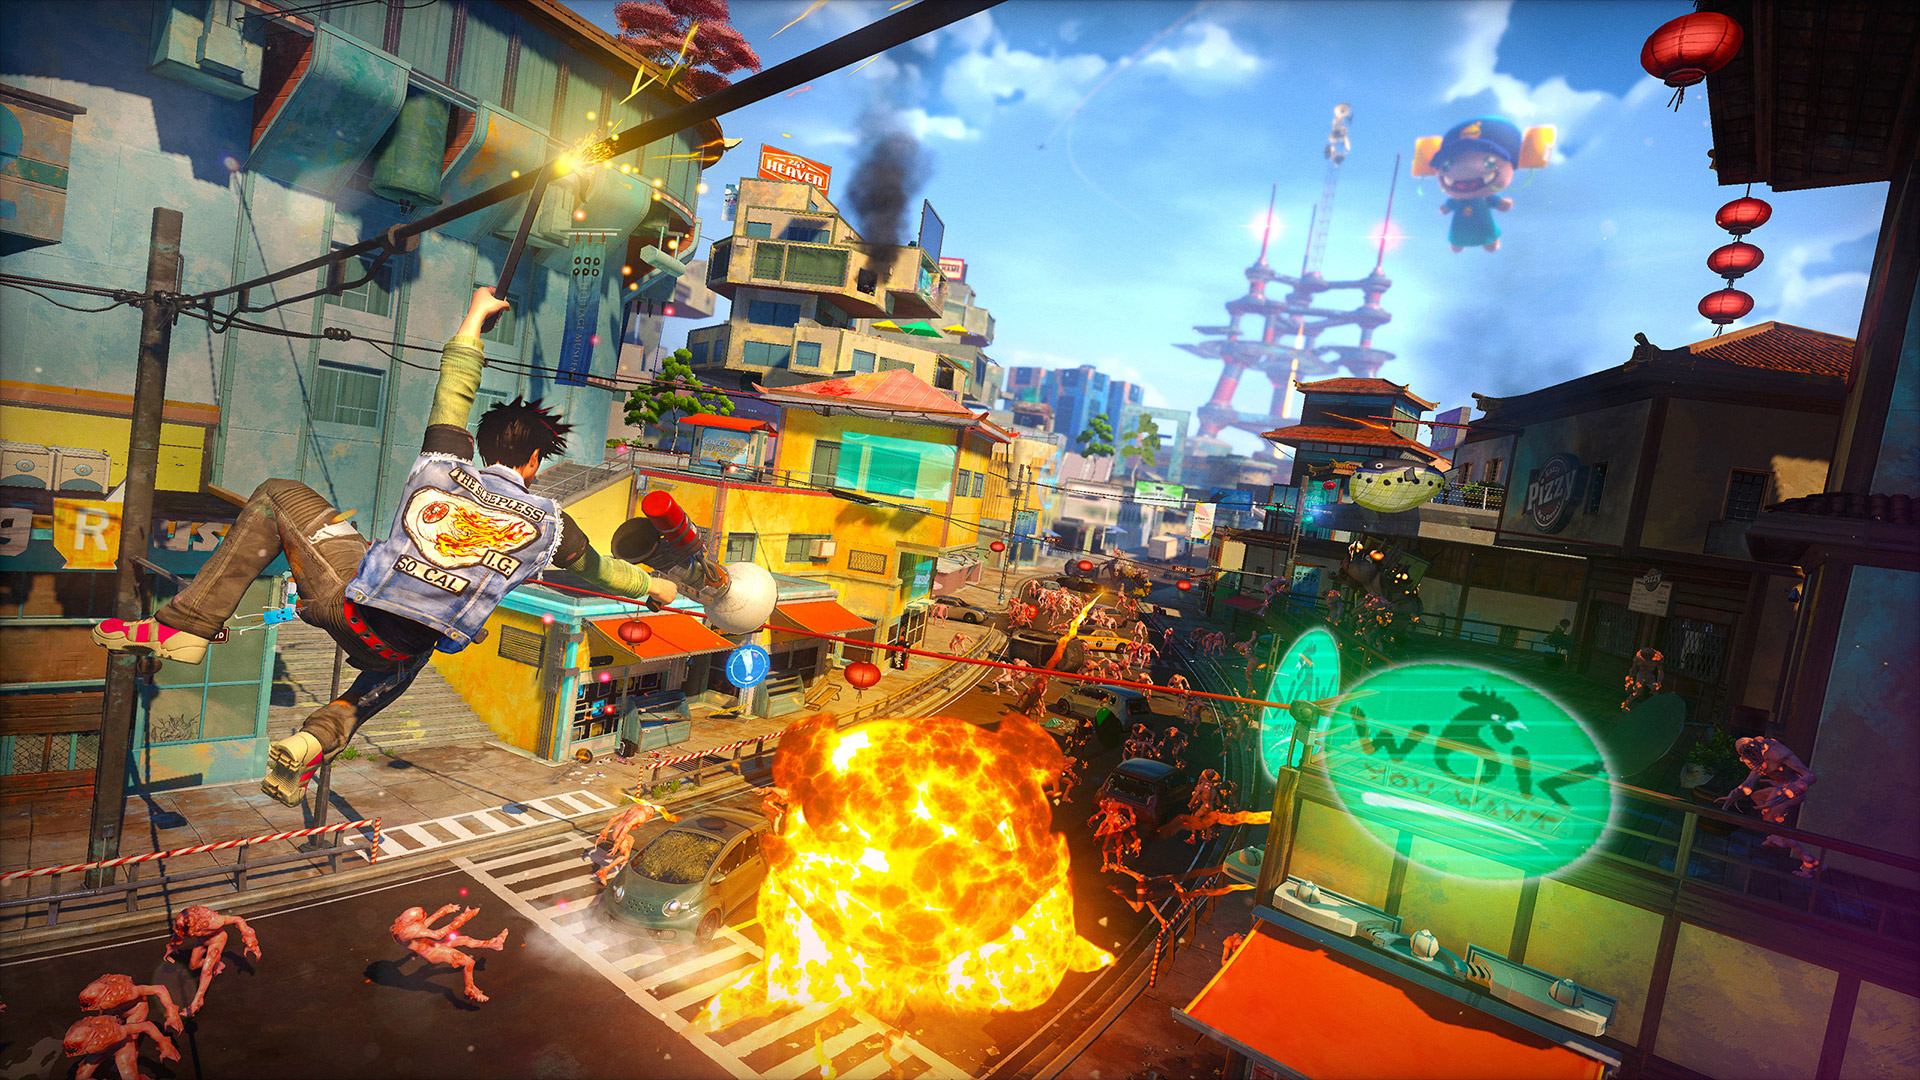 It sure looks like Sunset Overdrive is coming to PC screenshot